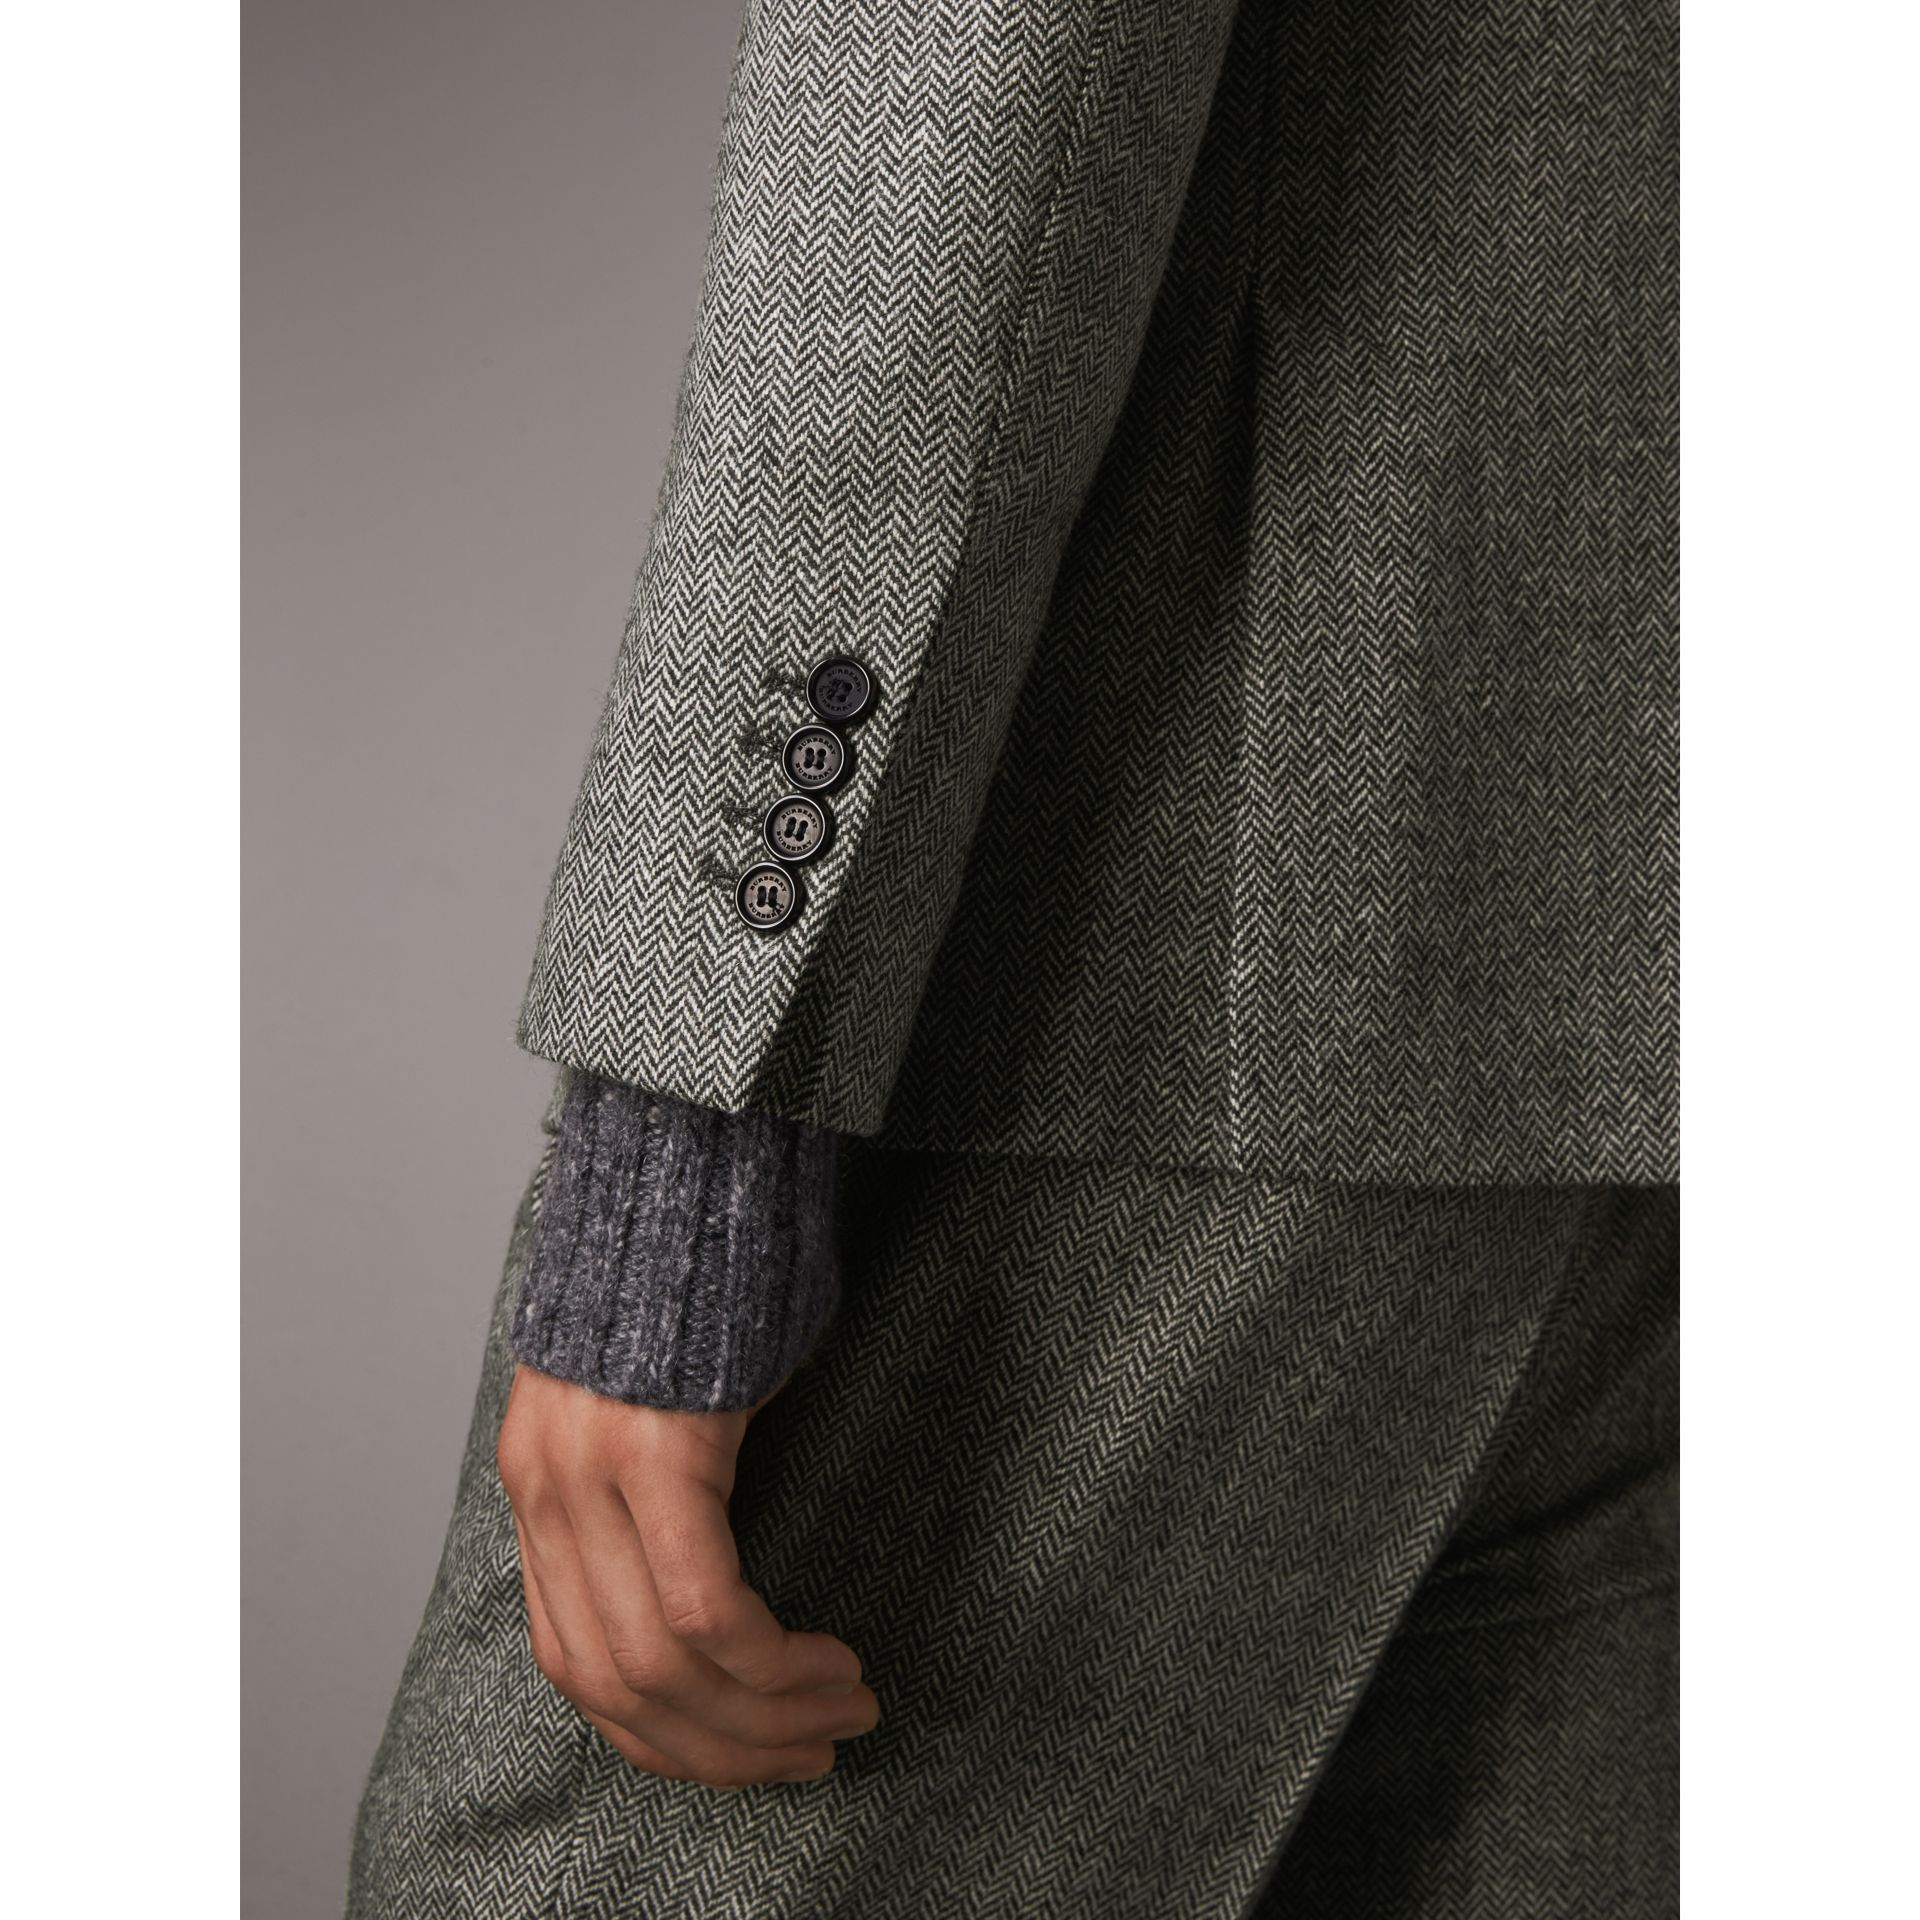 Soho Fit Herringbone Wool Tailored Jacket in Black / White - Men | Burberry Singapore - gallery image 6